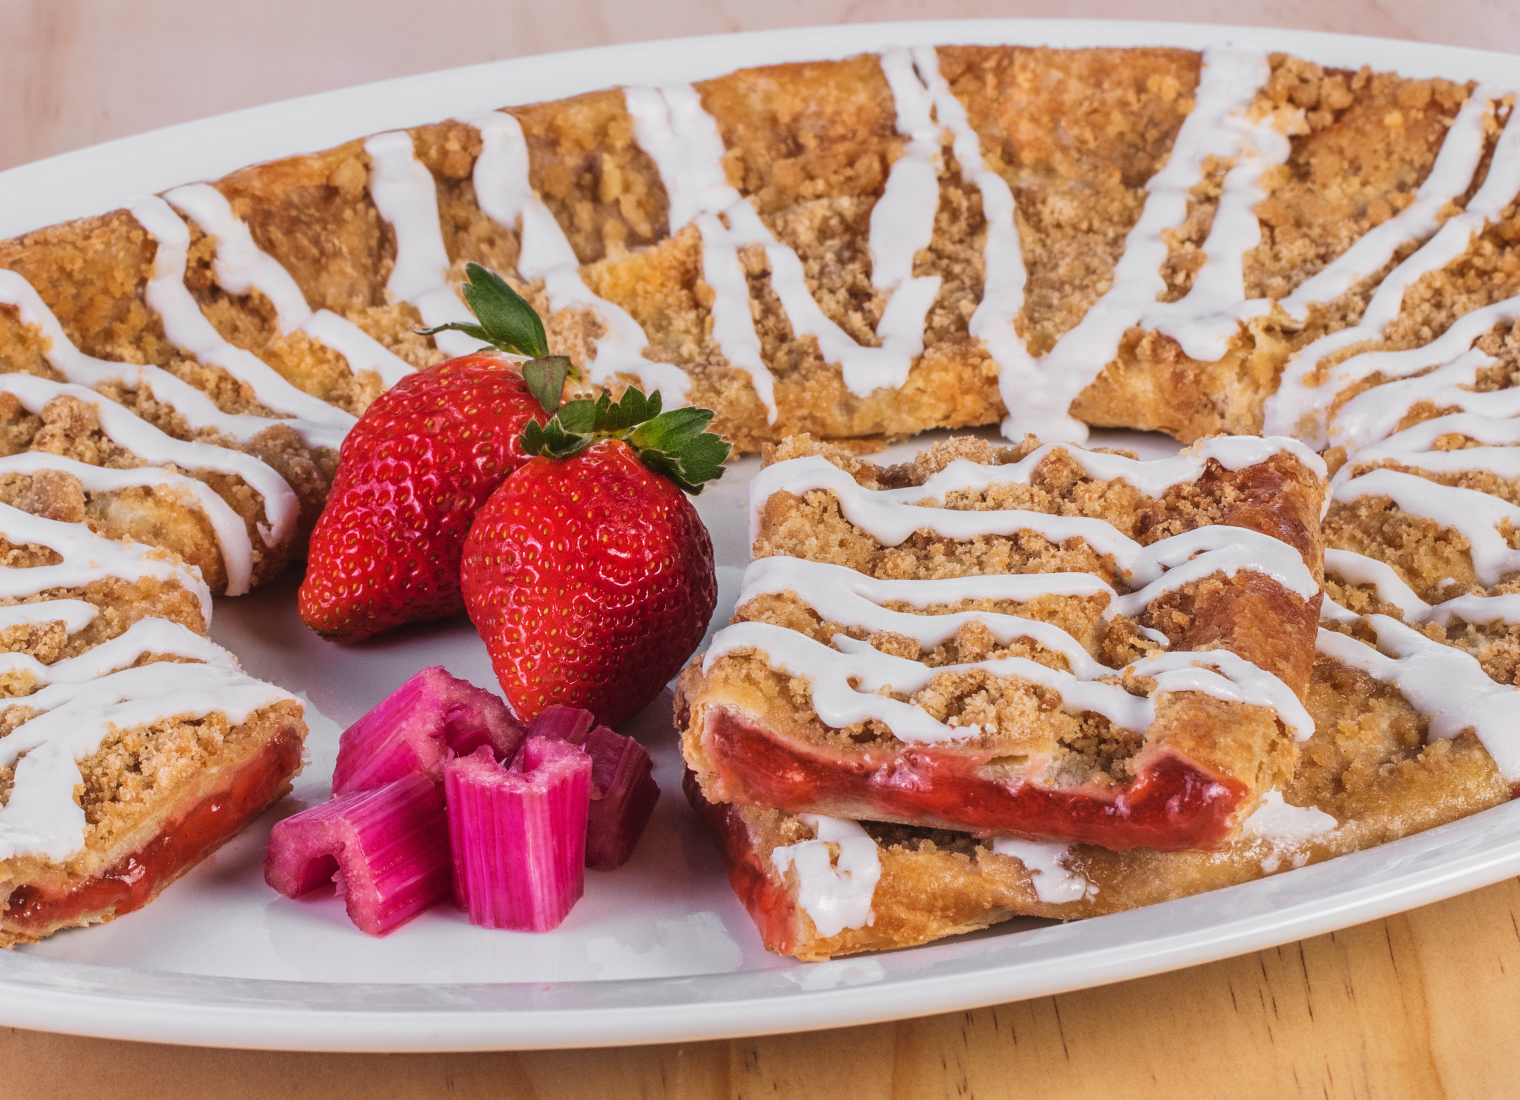 Strawberry Rhubarb Kringle on a plate with a slice cut out along with pieces of rhubarb to the side